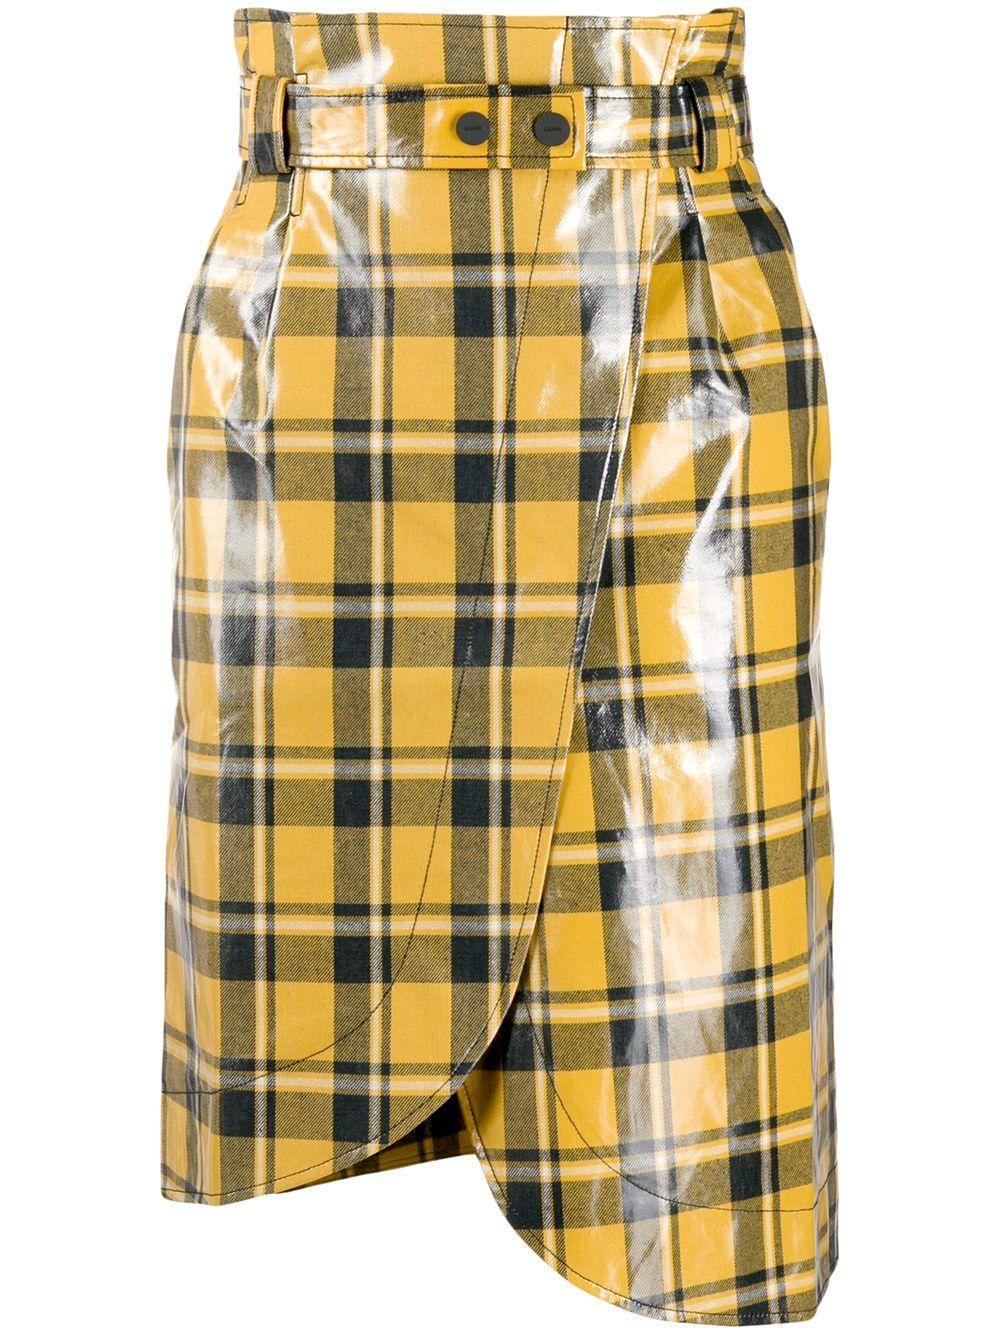 Coated Twill Plaid Midi Skirt Item # F4128